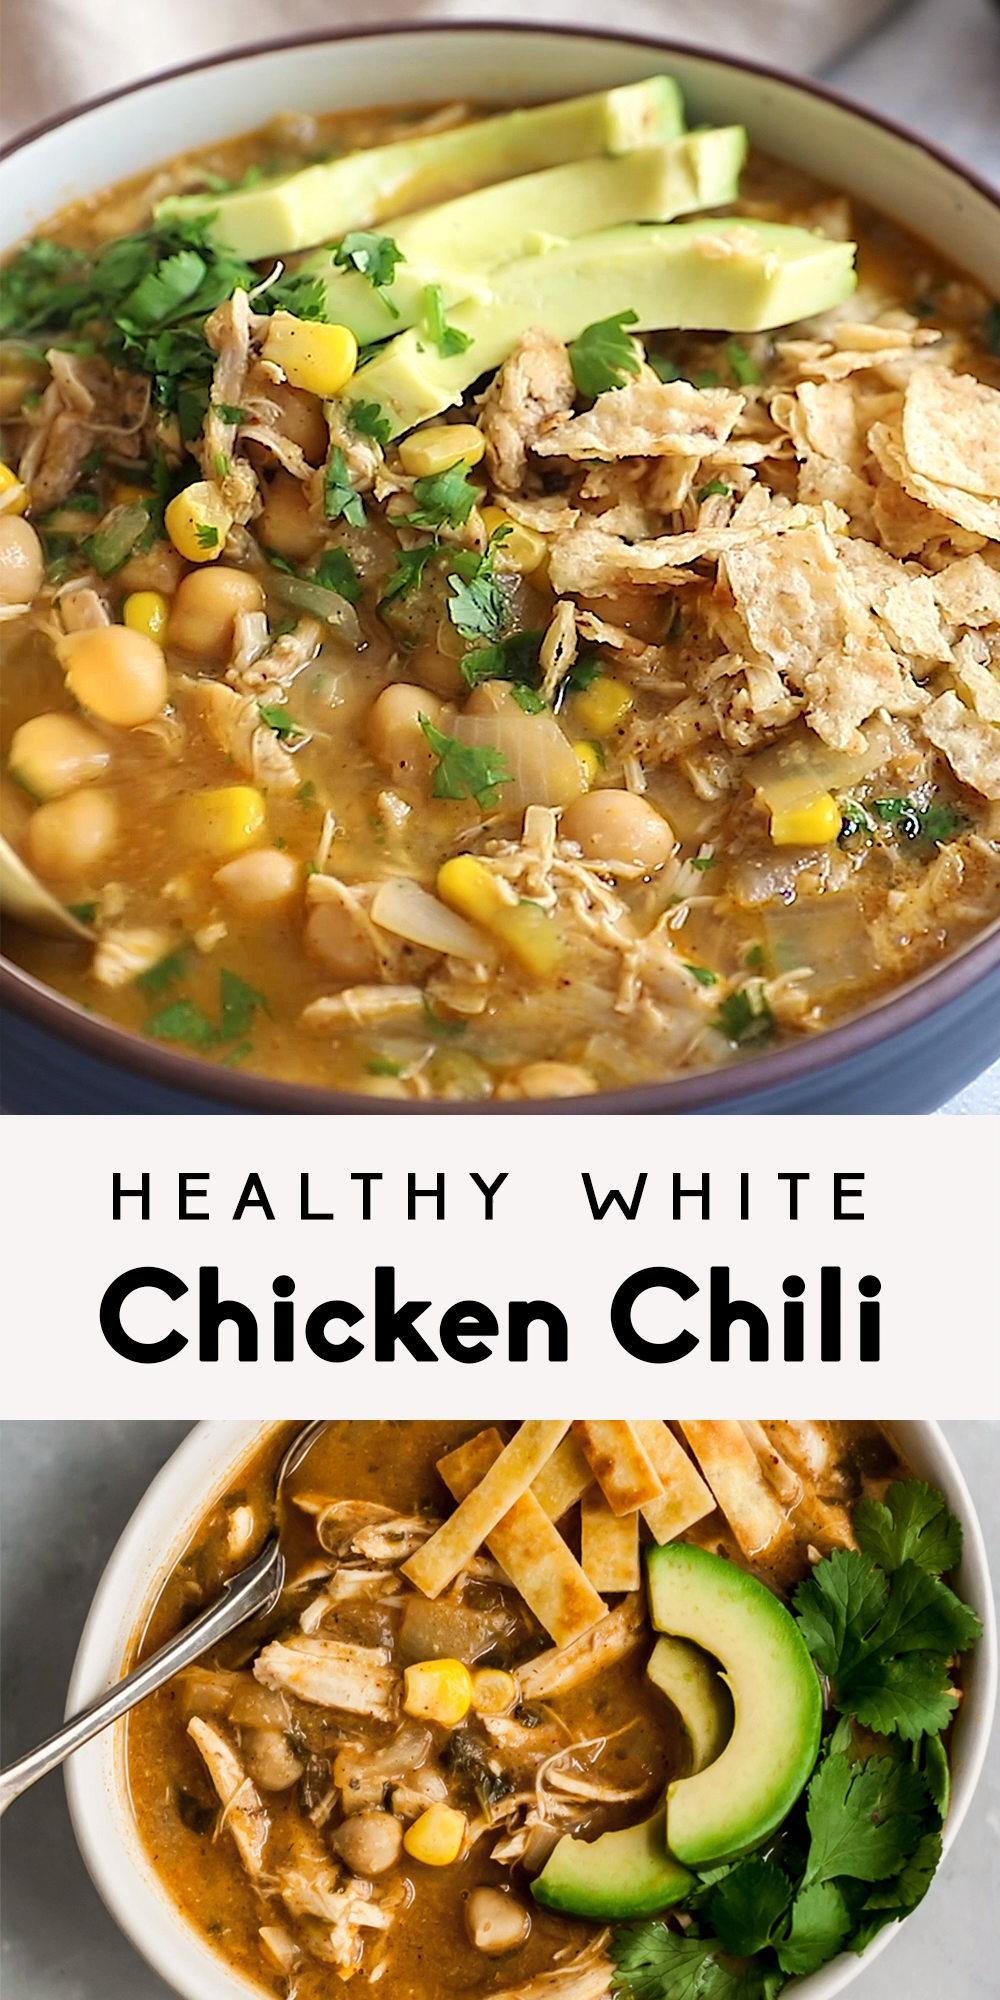 Healthy White Chicken Chili #healthydinnerrecipes Healthy white chicken chili that's nice and creamy, yet there's no cream! Made with green chile, chicken, corn and blended chickpeas to make it thick and creamy. This easy white chicken chili recipe can even be made in the slow cooker and is bound to become a new family favorite. Serve with avocado, tortilla chips and cilantro. #chili #gamedayfood #slowcooker #highprotein #healthydinner #mealprep #glutenfree #chickenrecipe #chickpeas #simpleicingrecipe